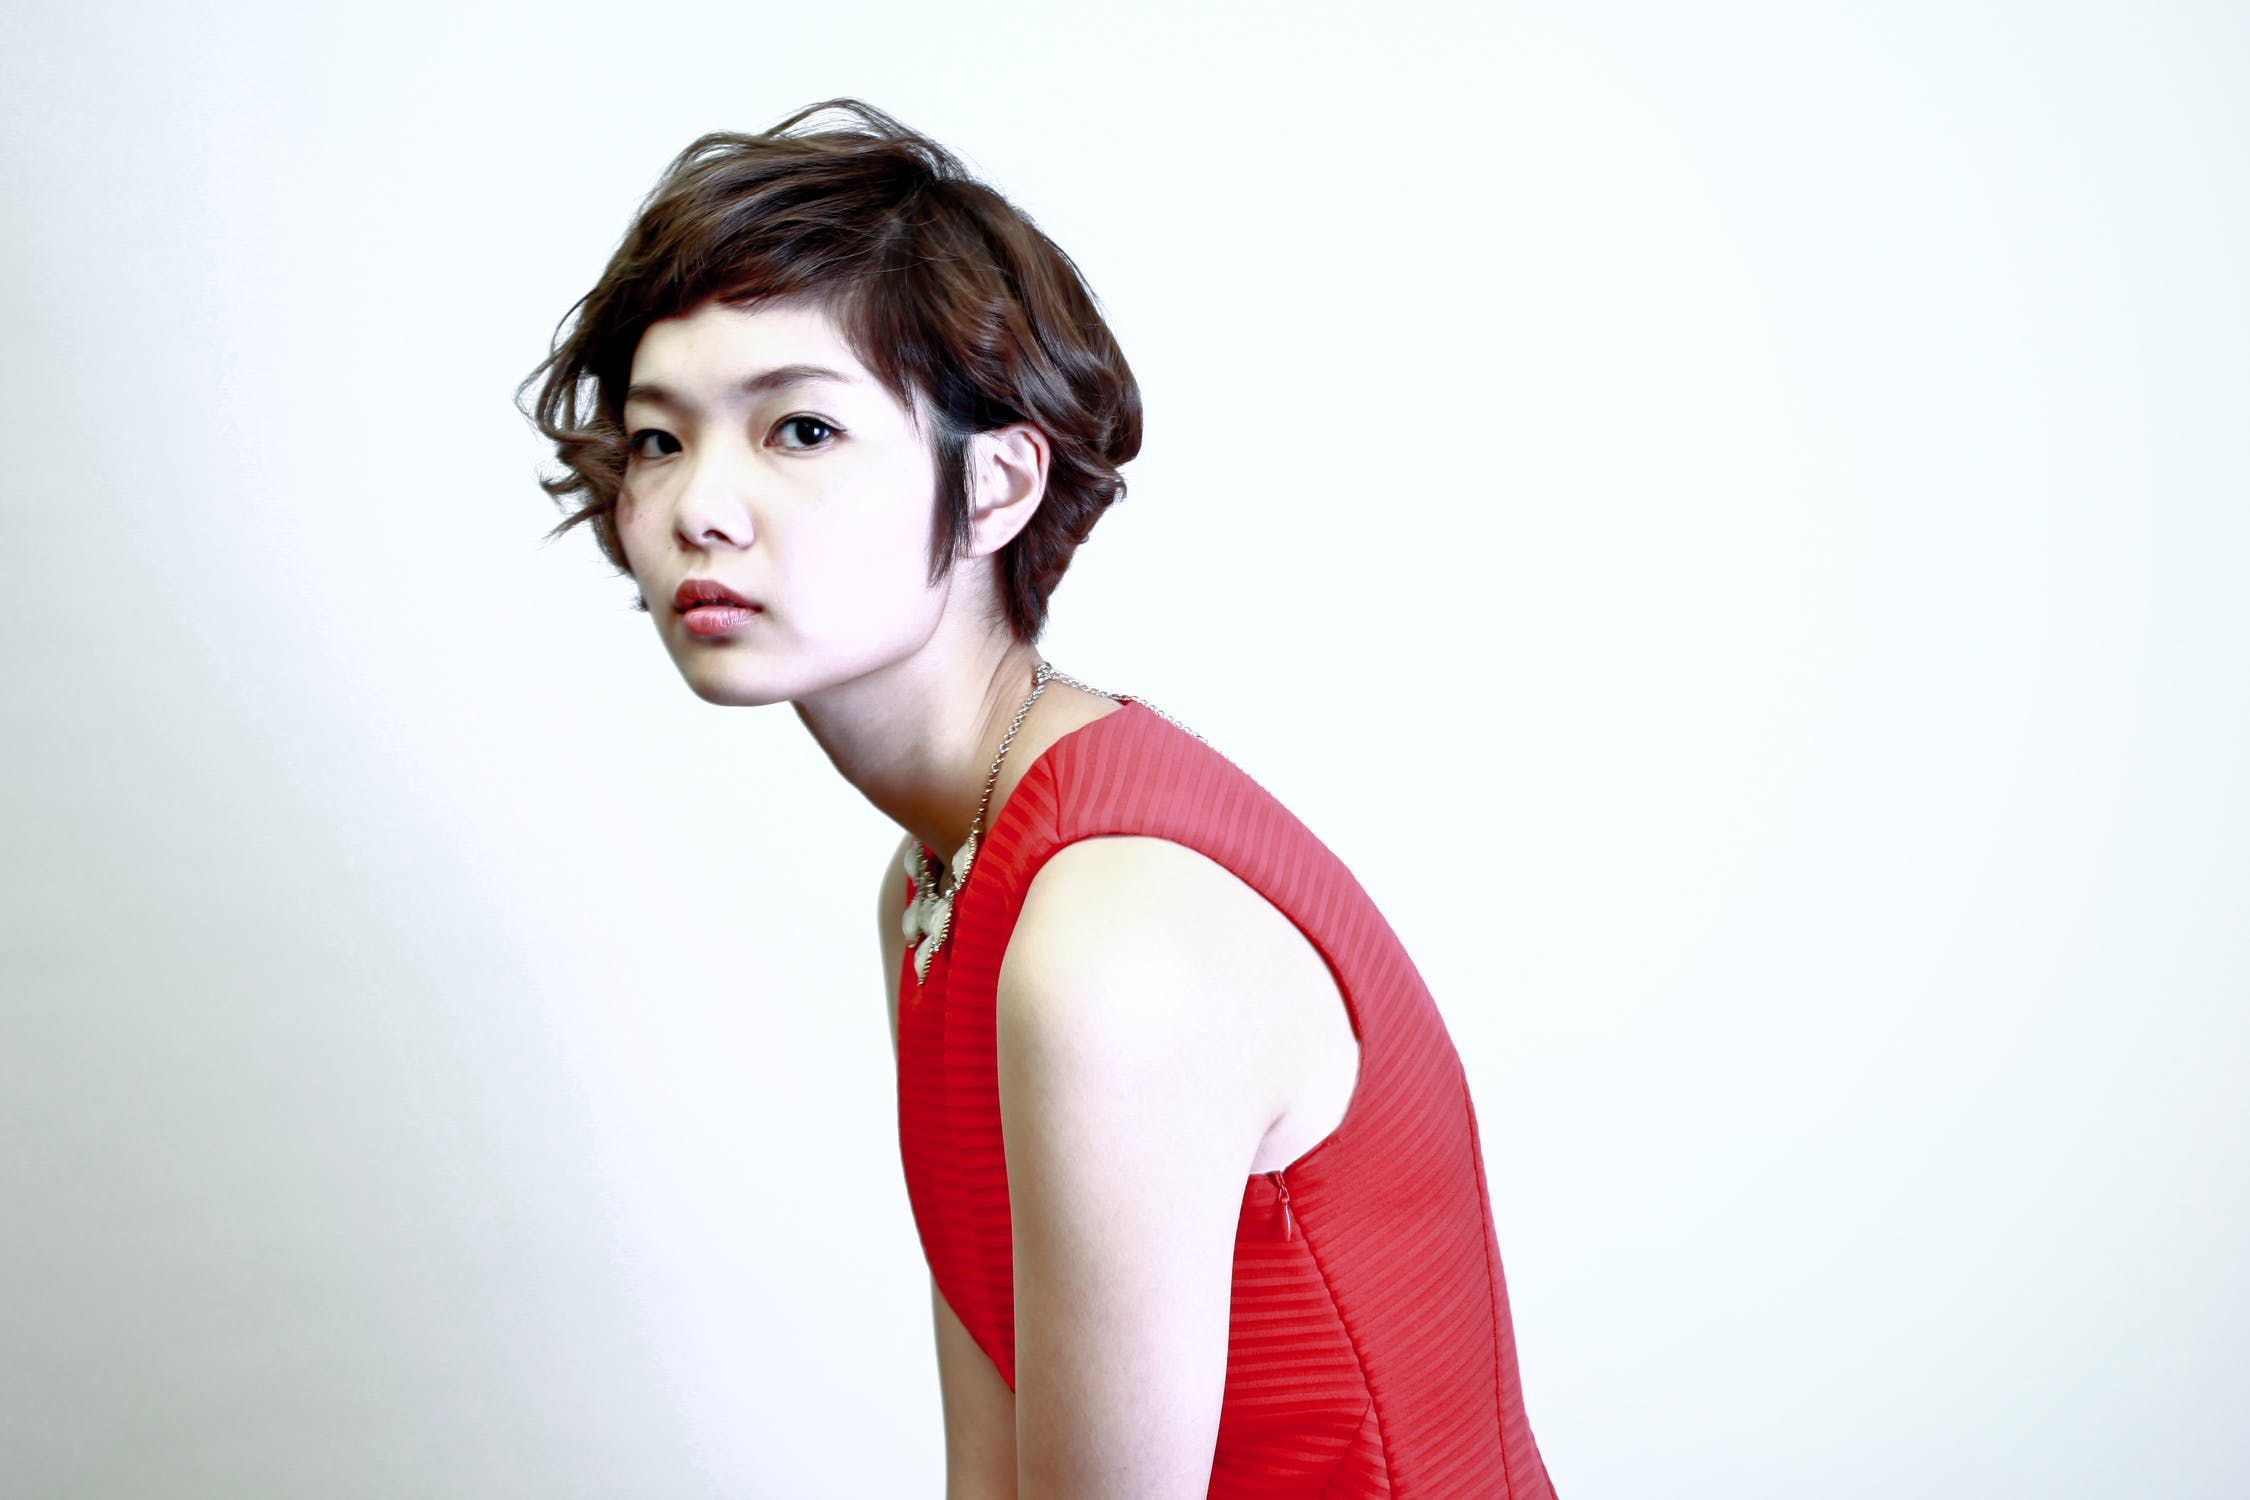 An Asian model with short hair wearing a red dress